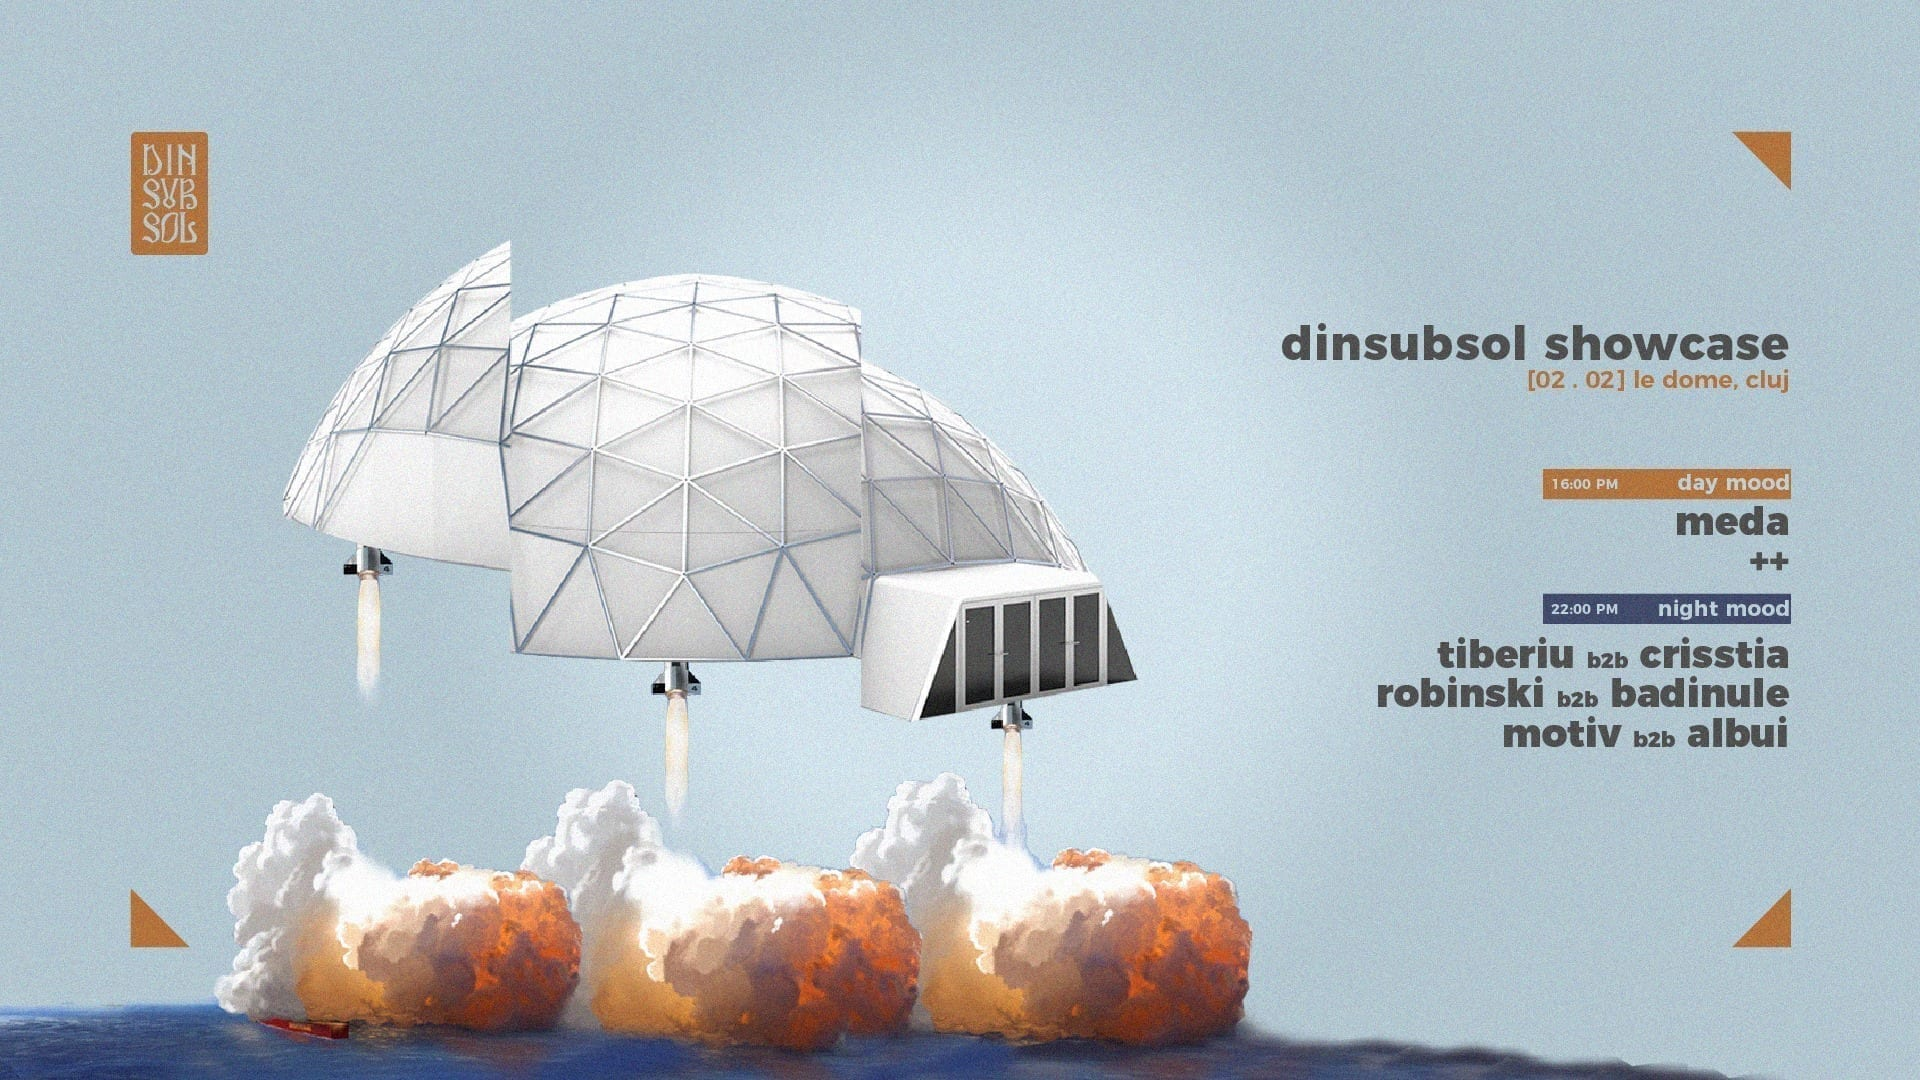 Dinsubsol showcase at Le Dome, Cluj